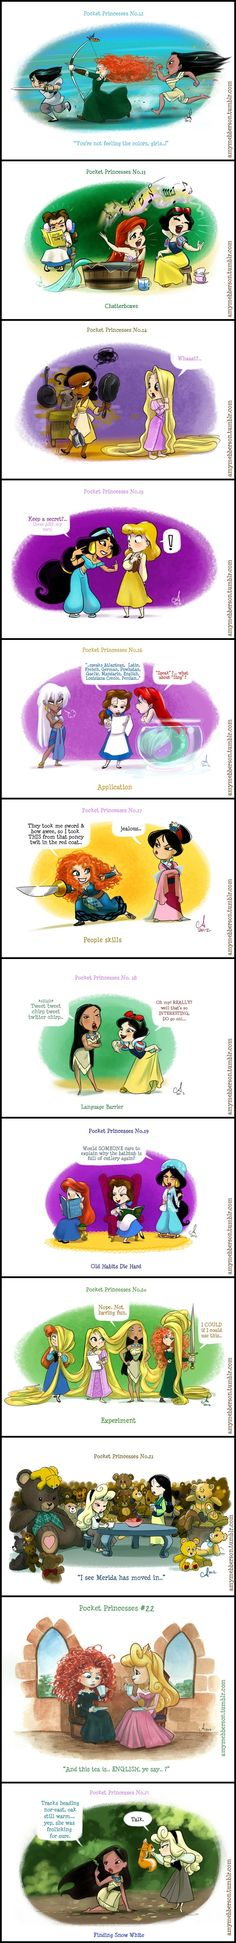 Pocket Princesses (Part 2) by Amy Mebberson Yeah I'm sure Mulan&Merida would hit it off just fine!